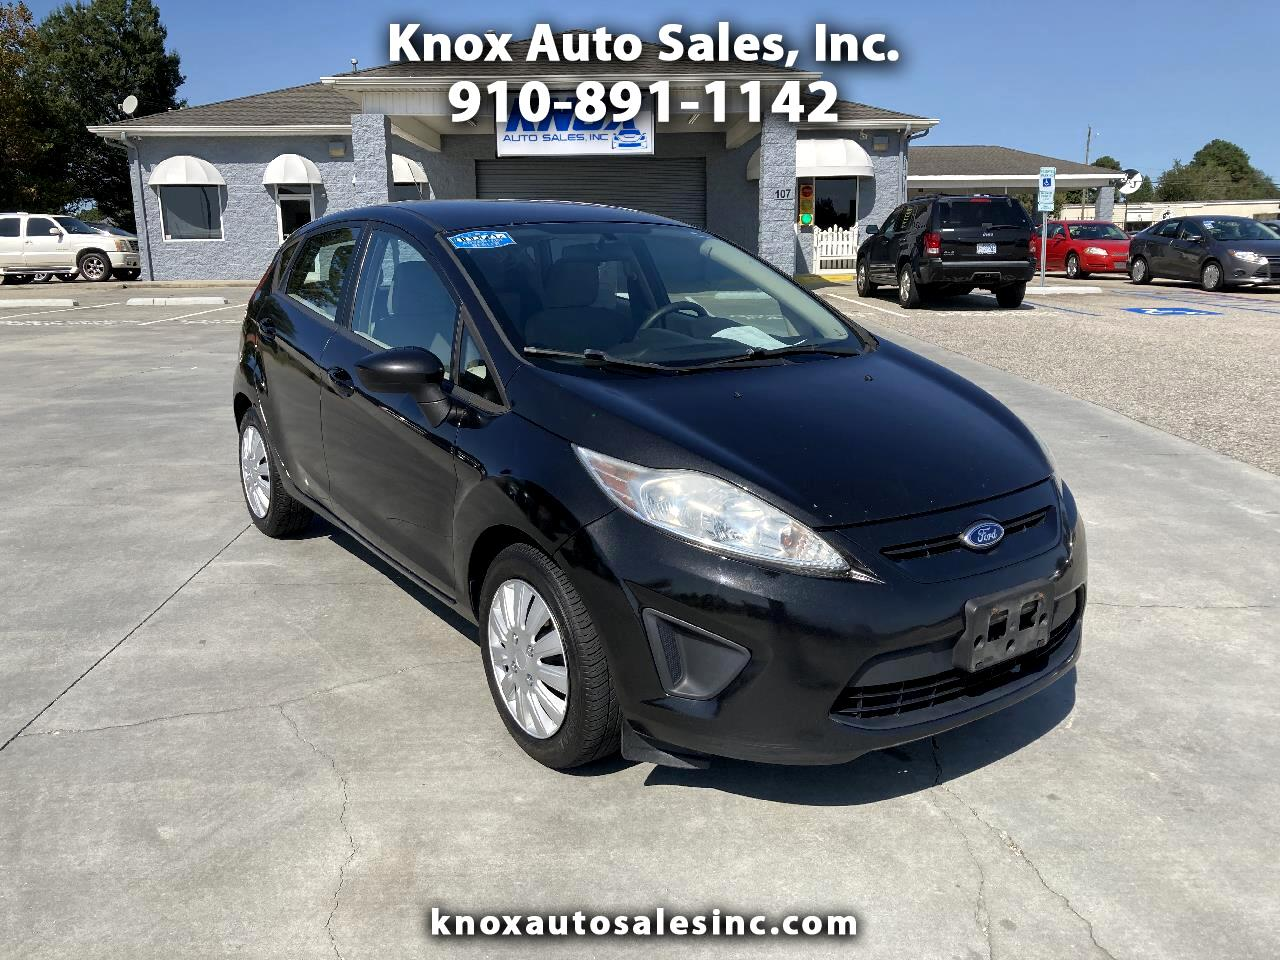 Ford Fiesta 5dr HB S 2012